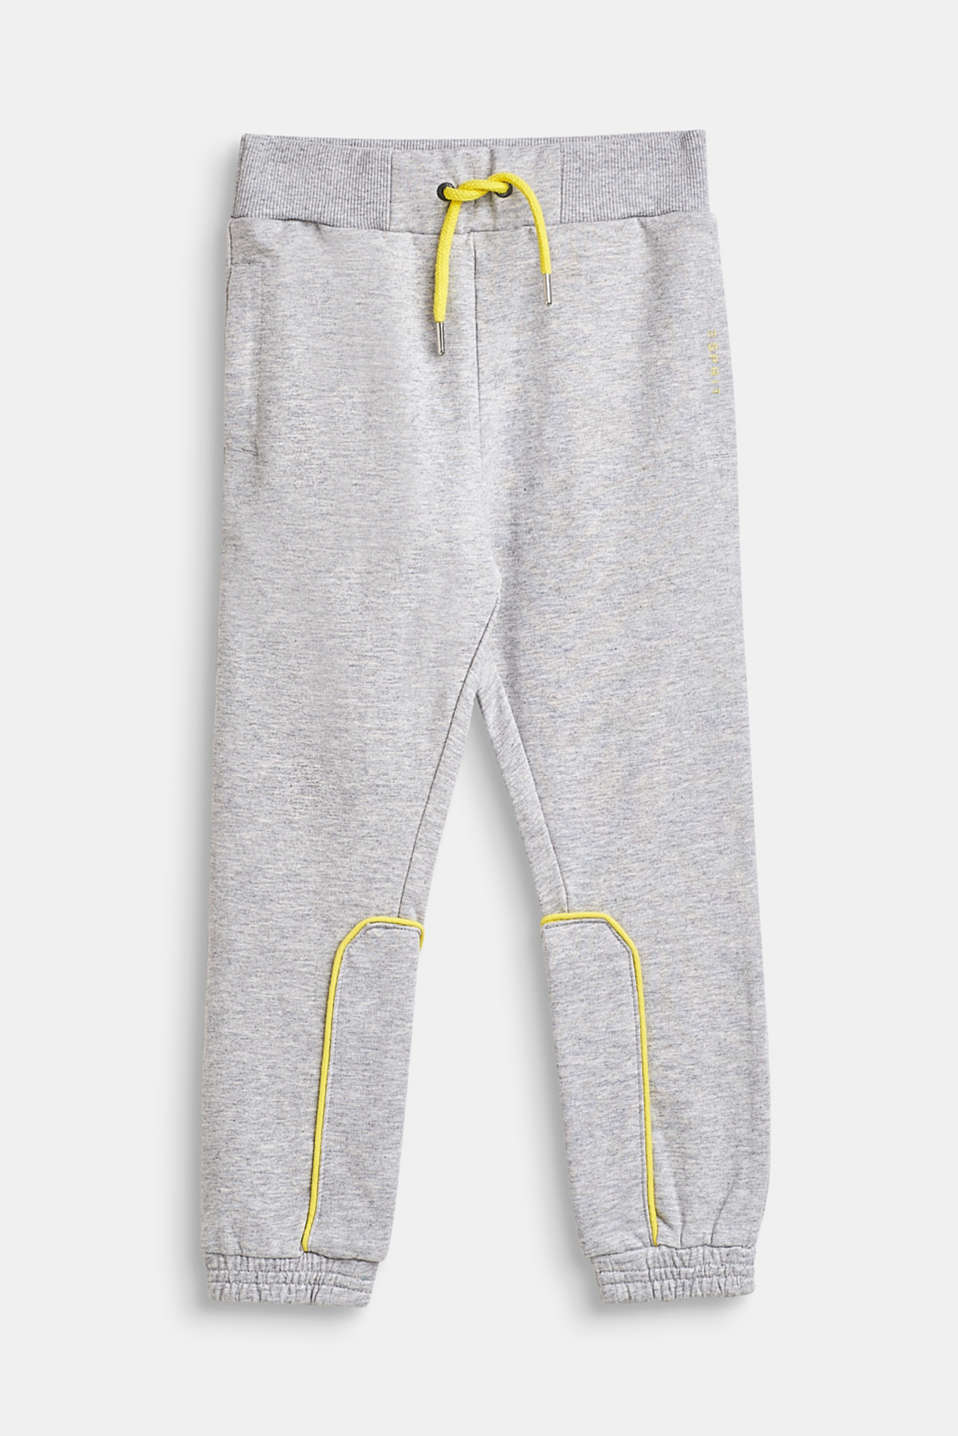 Esprit - Piped sweatshirt trousers, 100% cotton